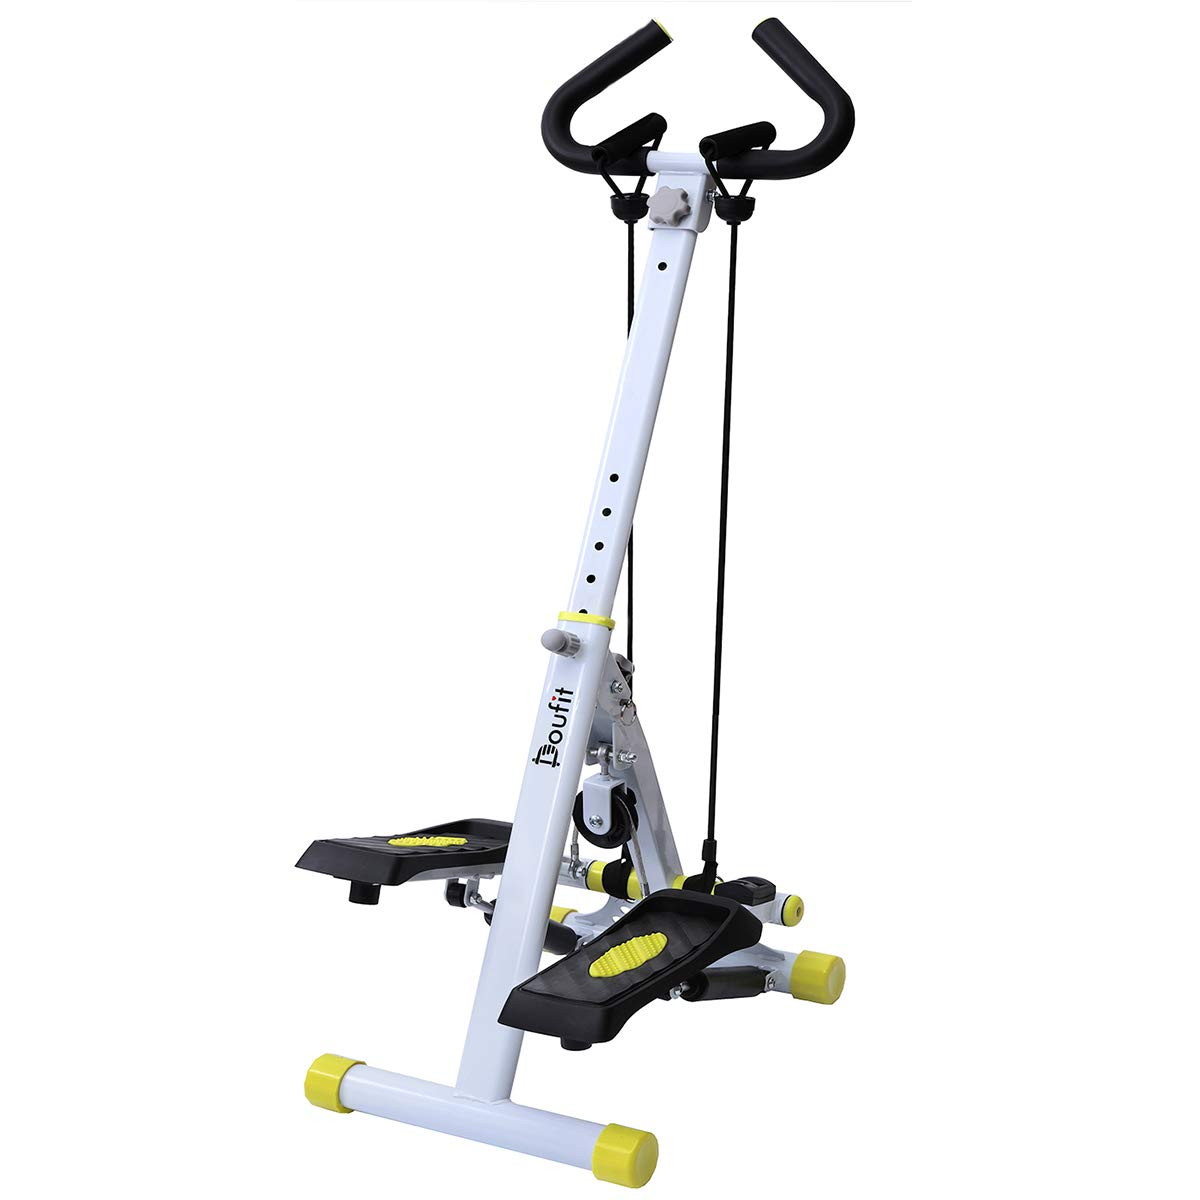 Doufit Stepper for Exercise Workout, ST-01 Foldable Stair Step Machine for Home Use with Handle and Resistance Bands…